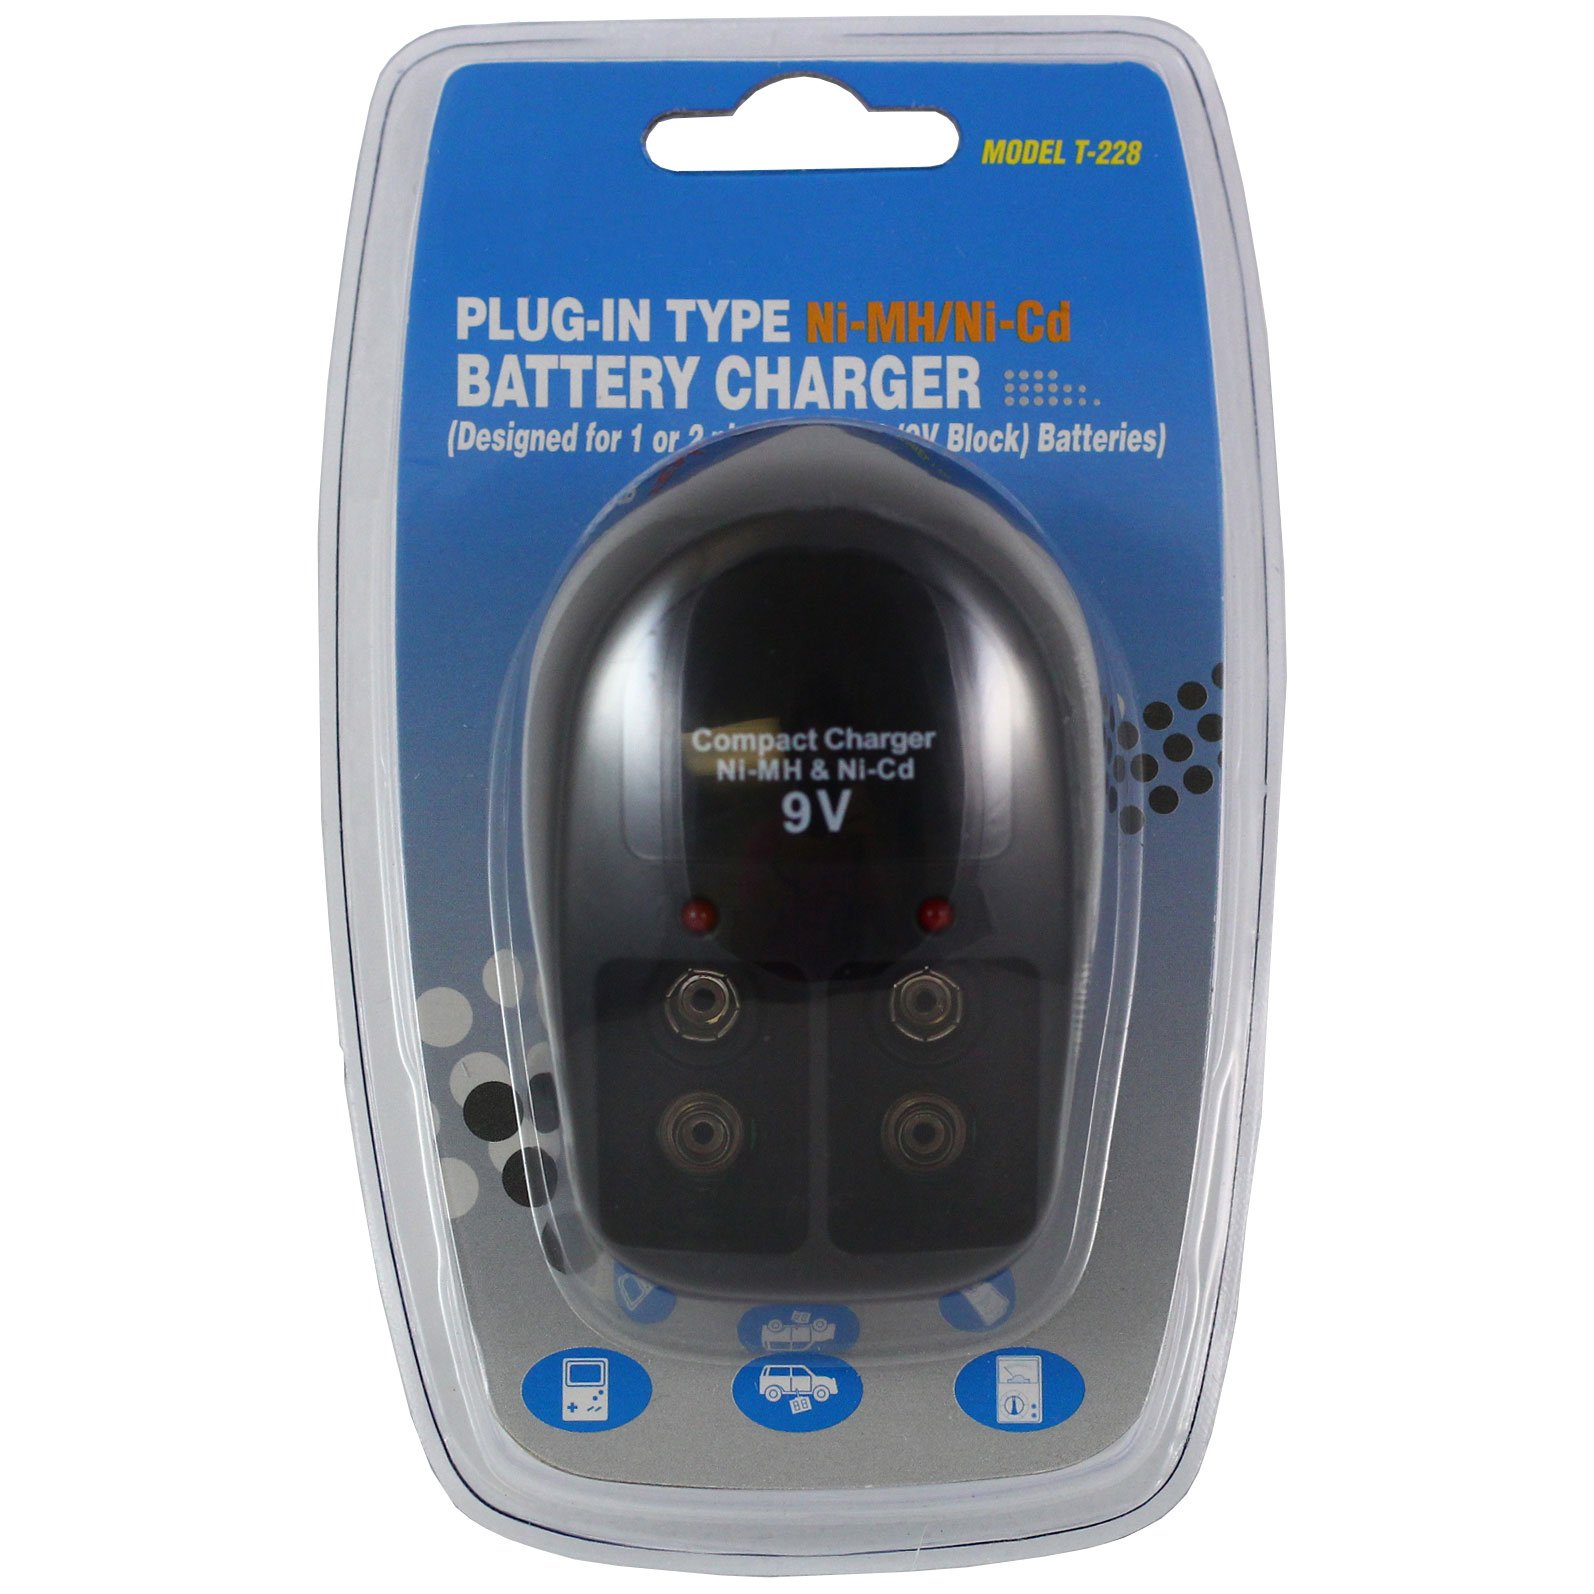 UNIVERSAL BATTERY C7956 Dual Port Charger